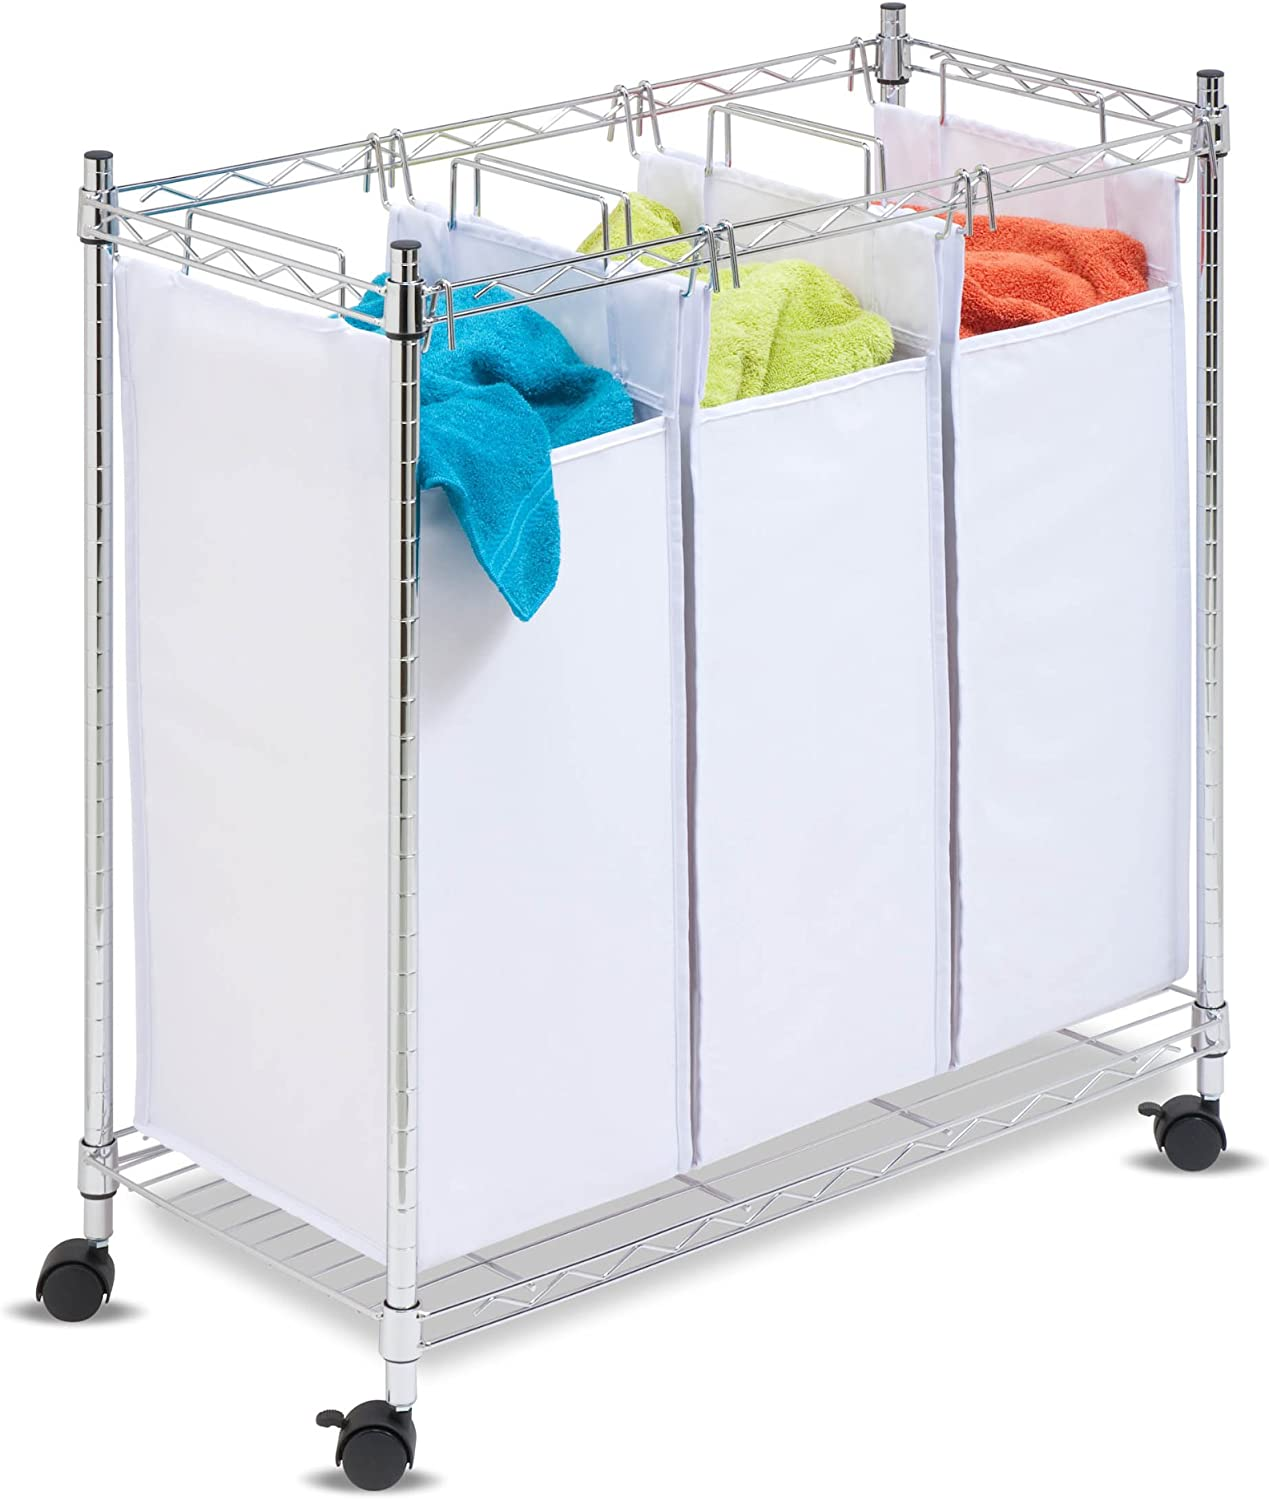 Honey-Can-Do Urban Triple sorter Rolling, Chrome/White